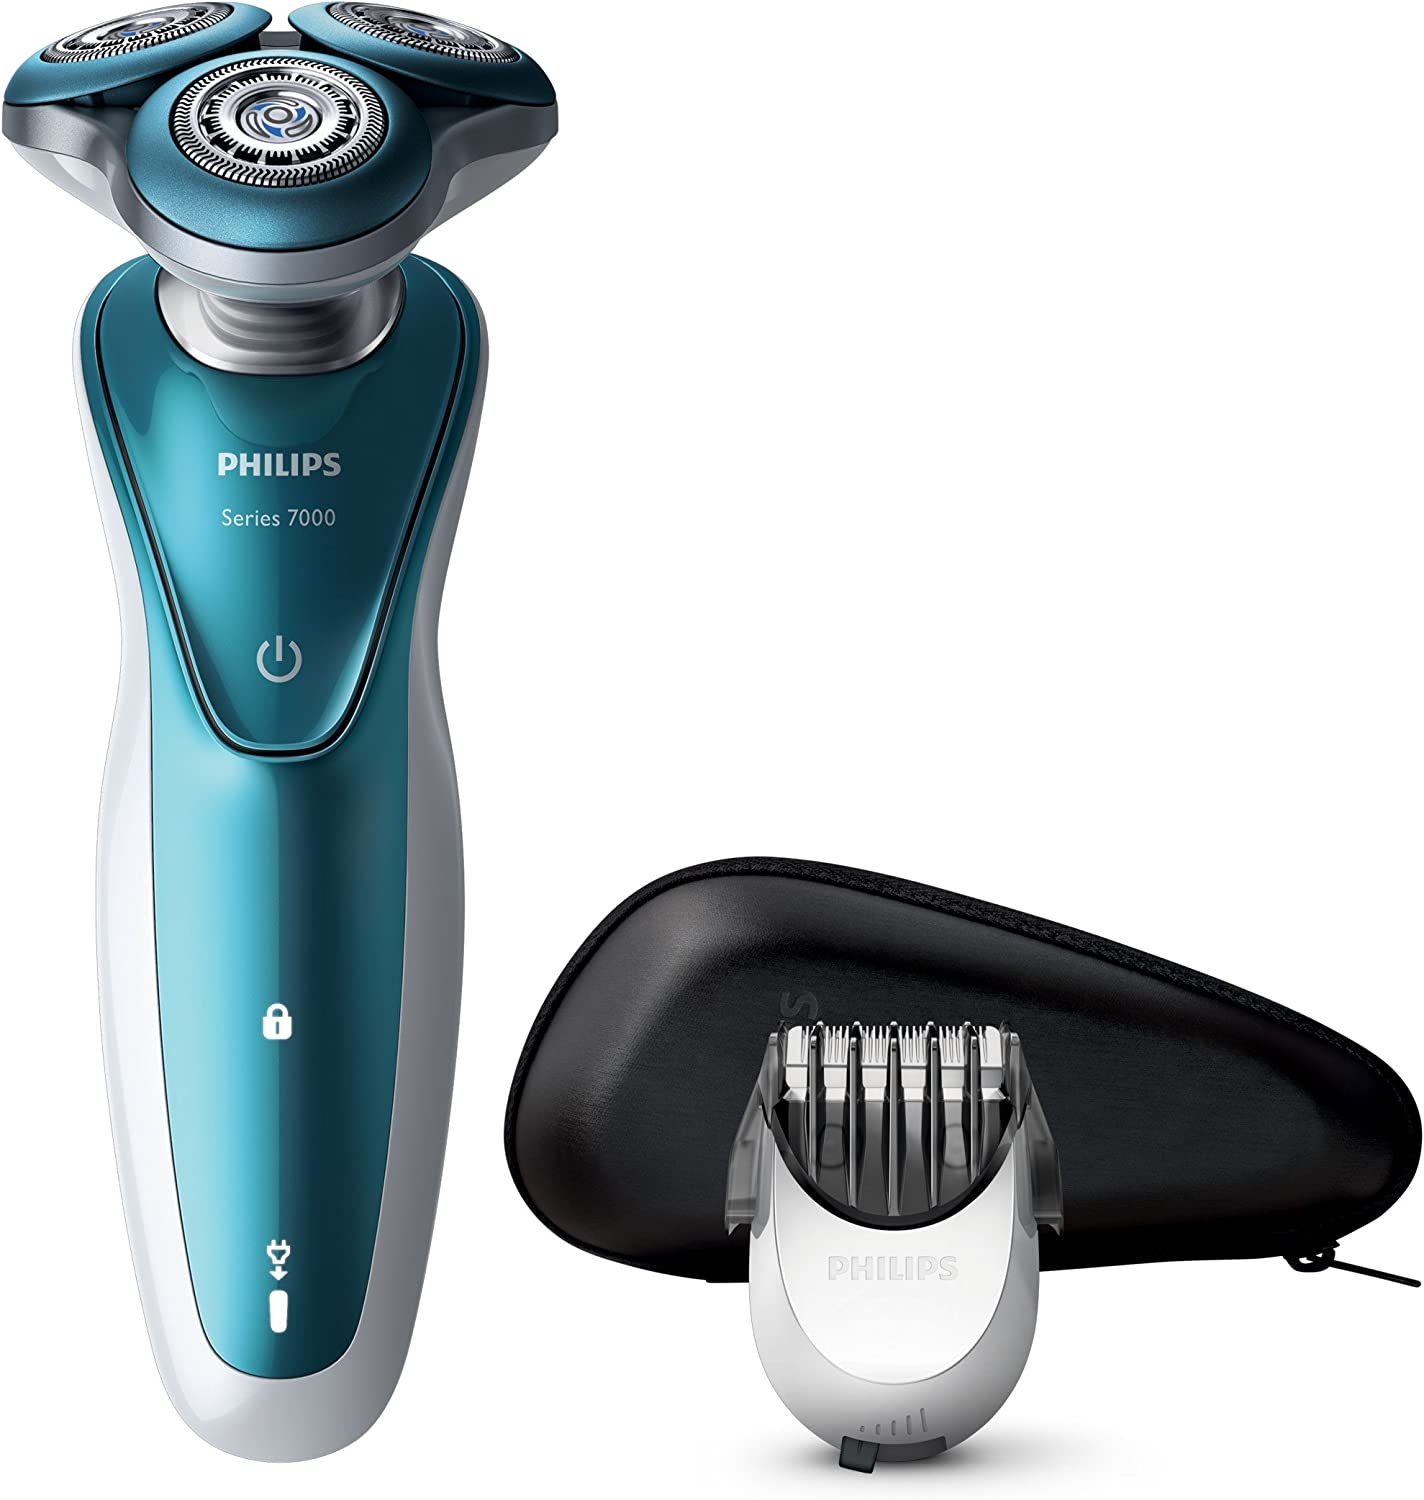 Philips S7370/41 - Afeitadora eléctrica, Uso en seco y húmedo, con Funda y perfilador de Barba SmartClick, Color Azul, battery-powered, 2015: Amazon.es: Electrónica